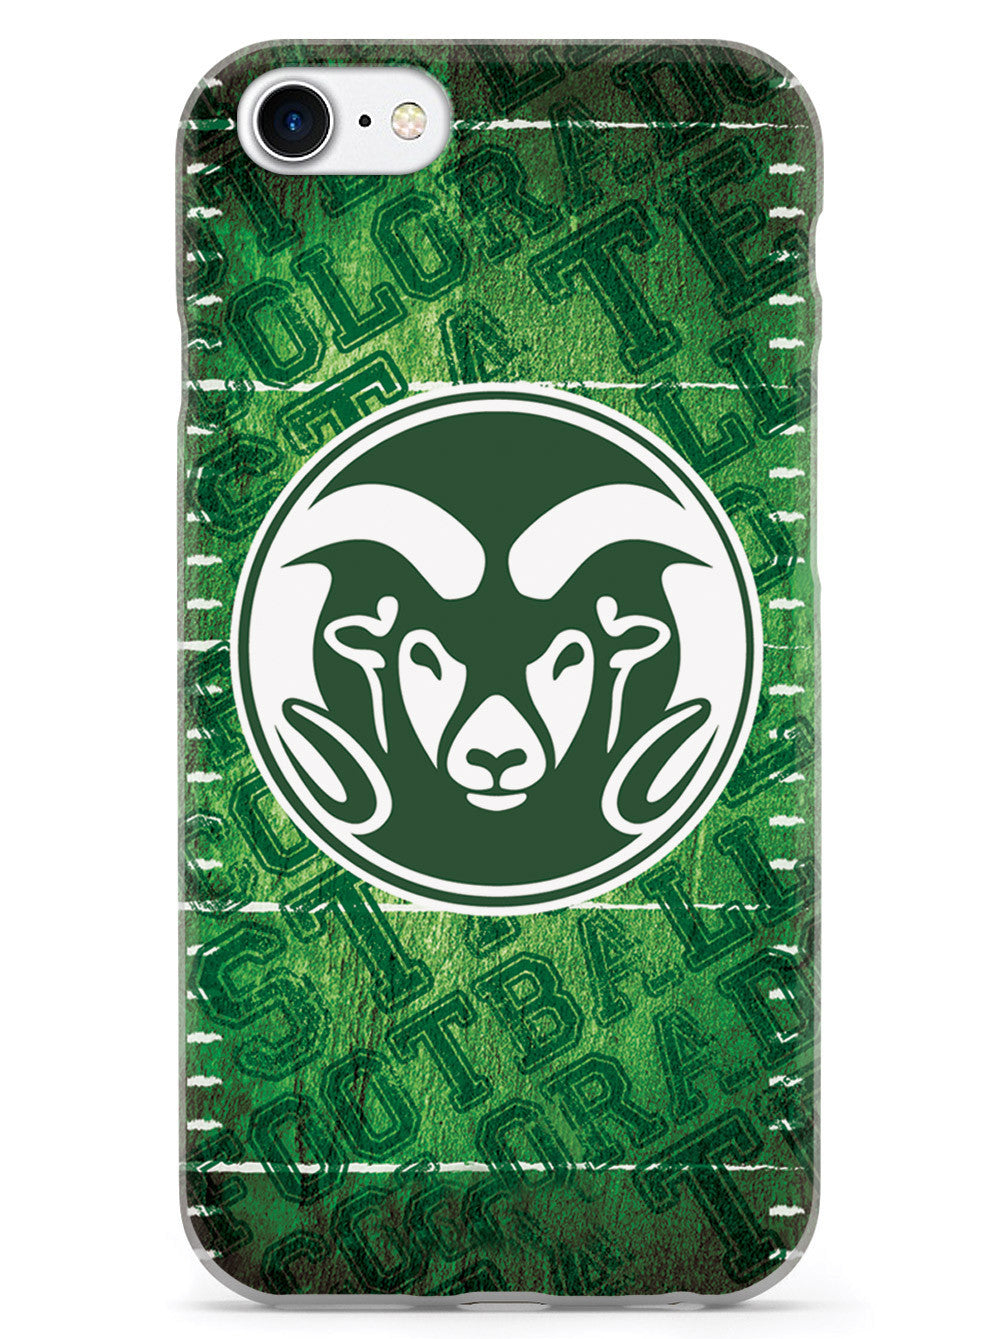 Colorado State University Rams - Football Case